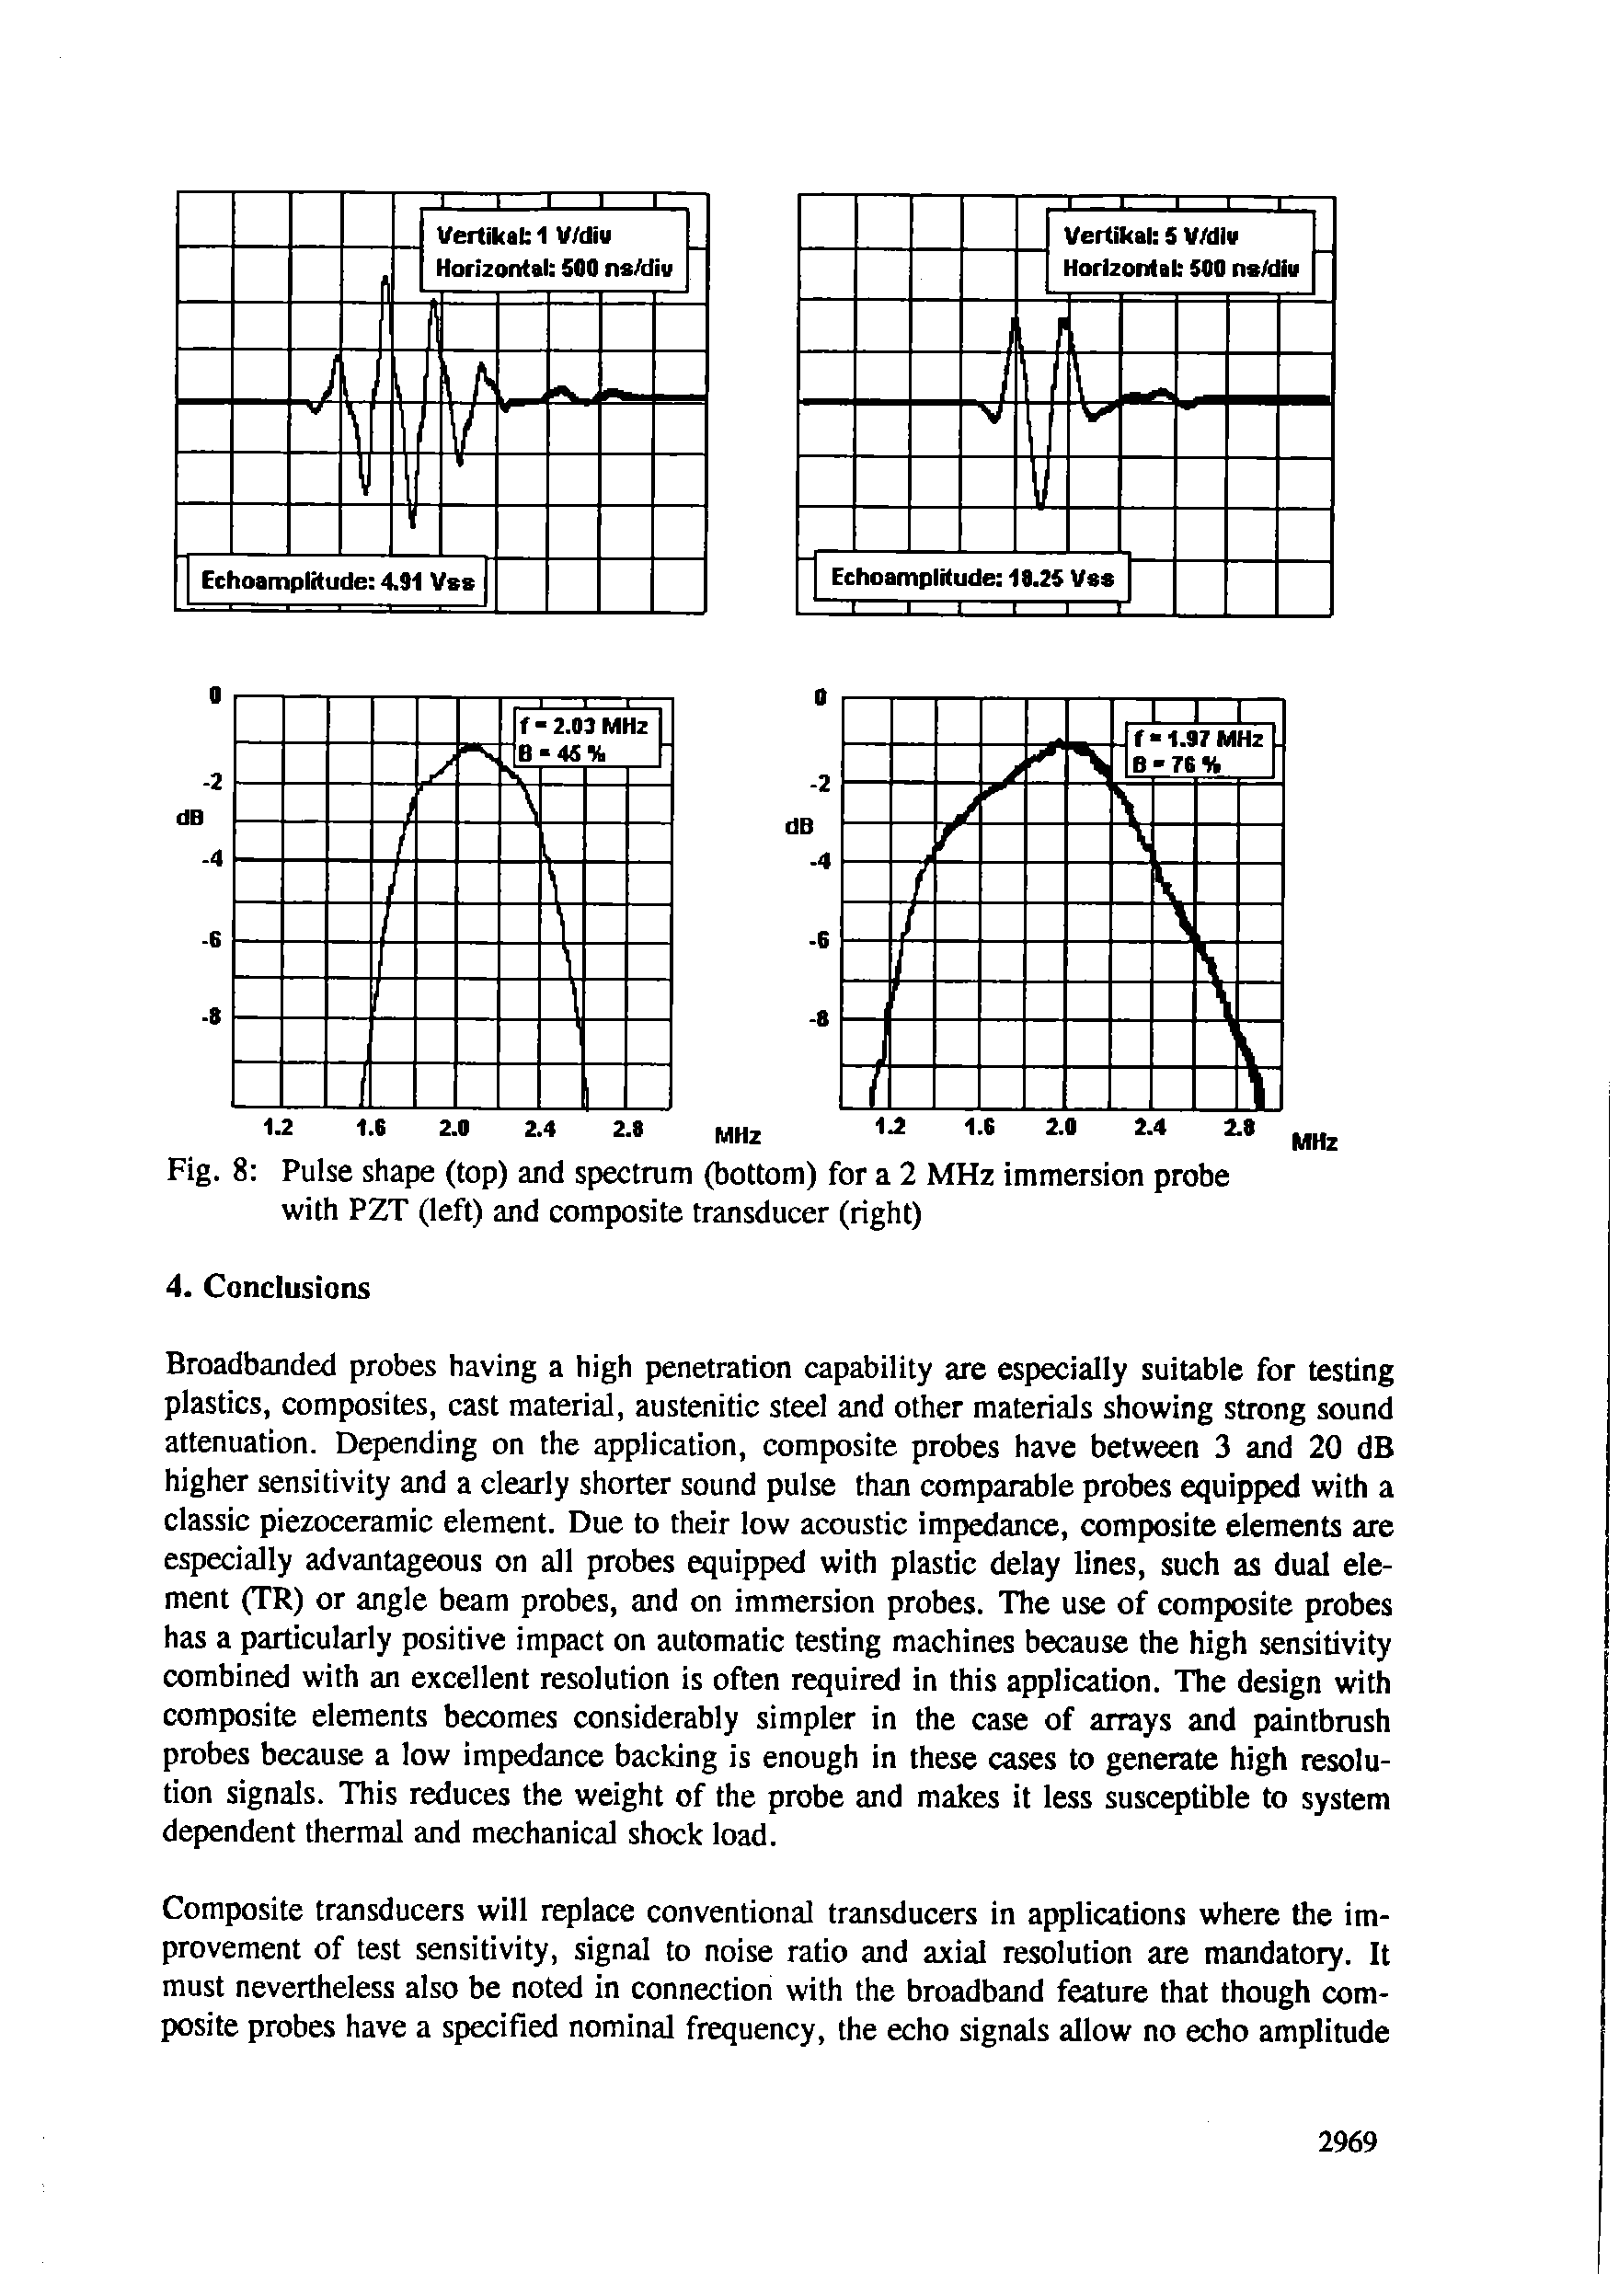 "Fig. 8 <a href=""/info/pulse_shape"">Pulse shape</a> (top) and spectrum (bottom) for a 2 MHz <a href=""/info/immersion_probes"">immersion probe</a> with PZT (left) and composite transducer (right)"